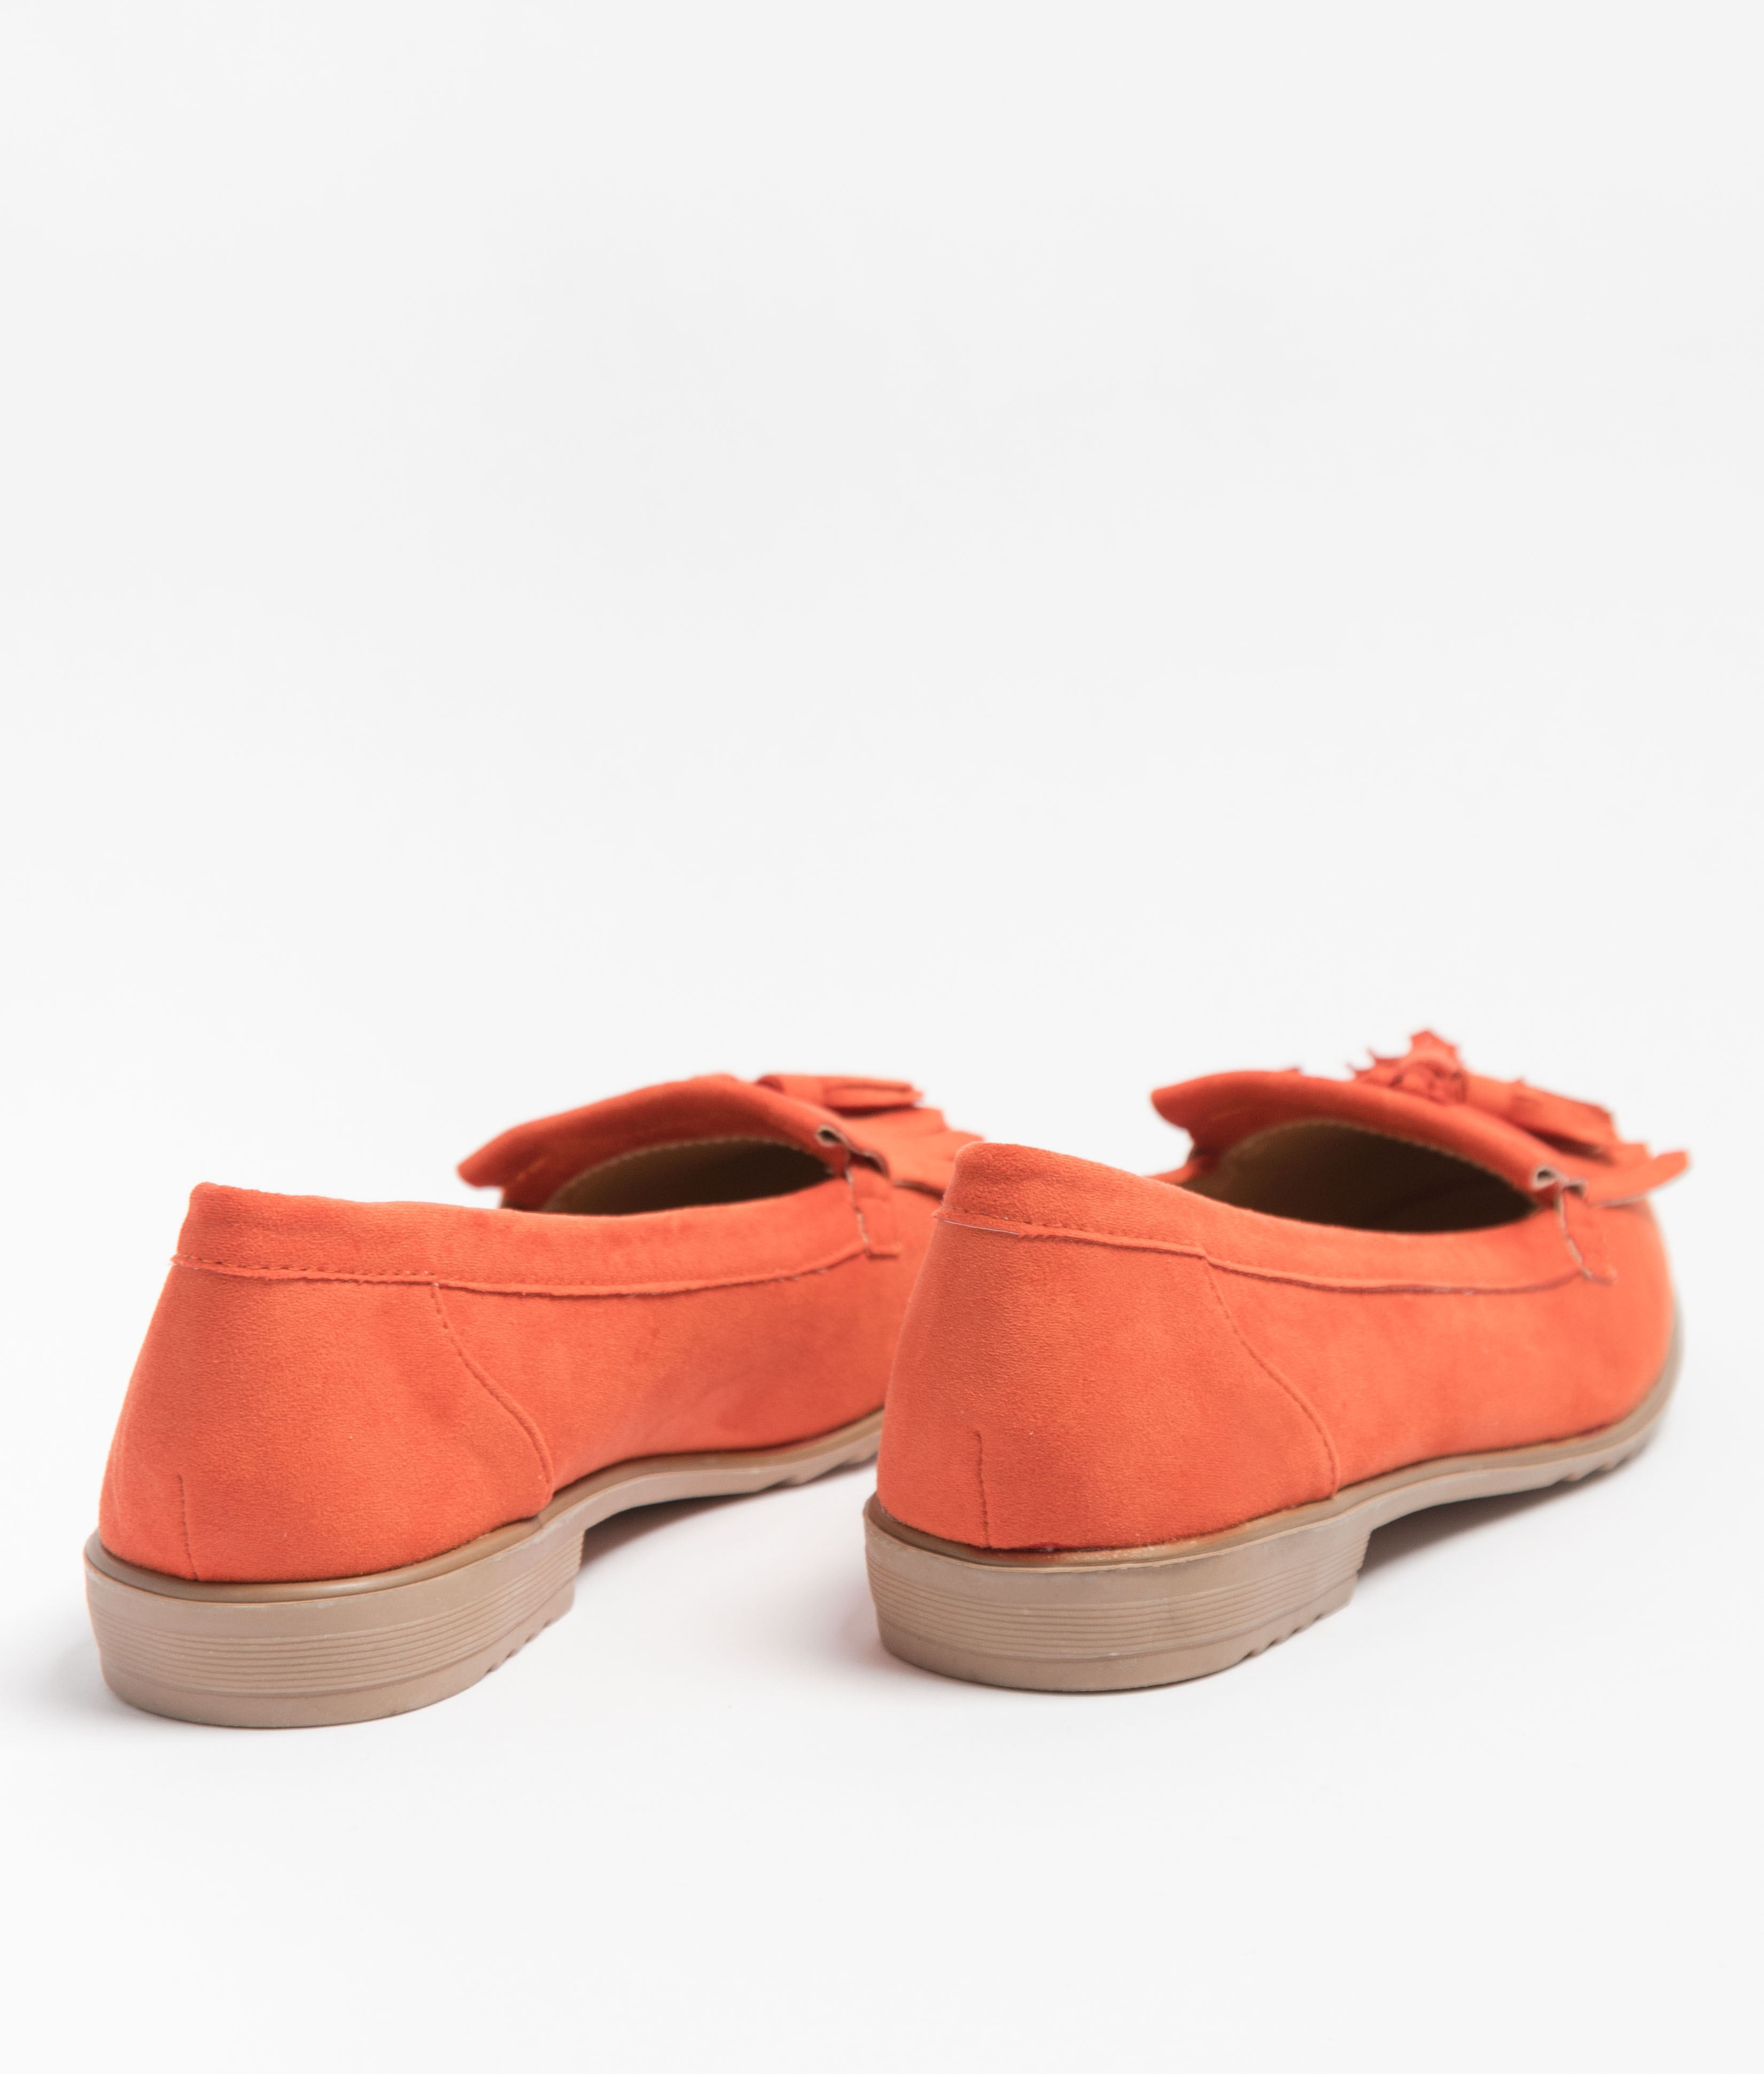 Zapatito Canadiense - Laranja